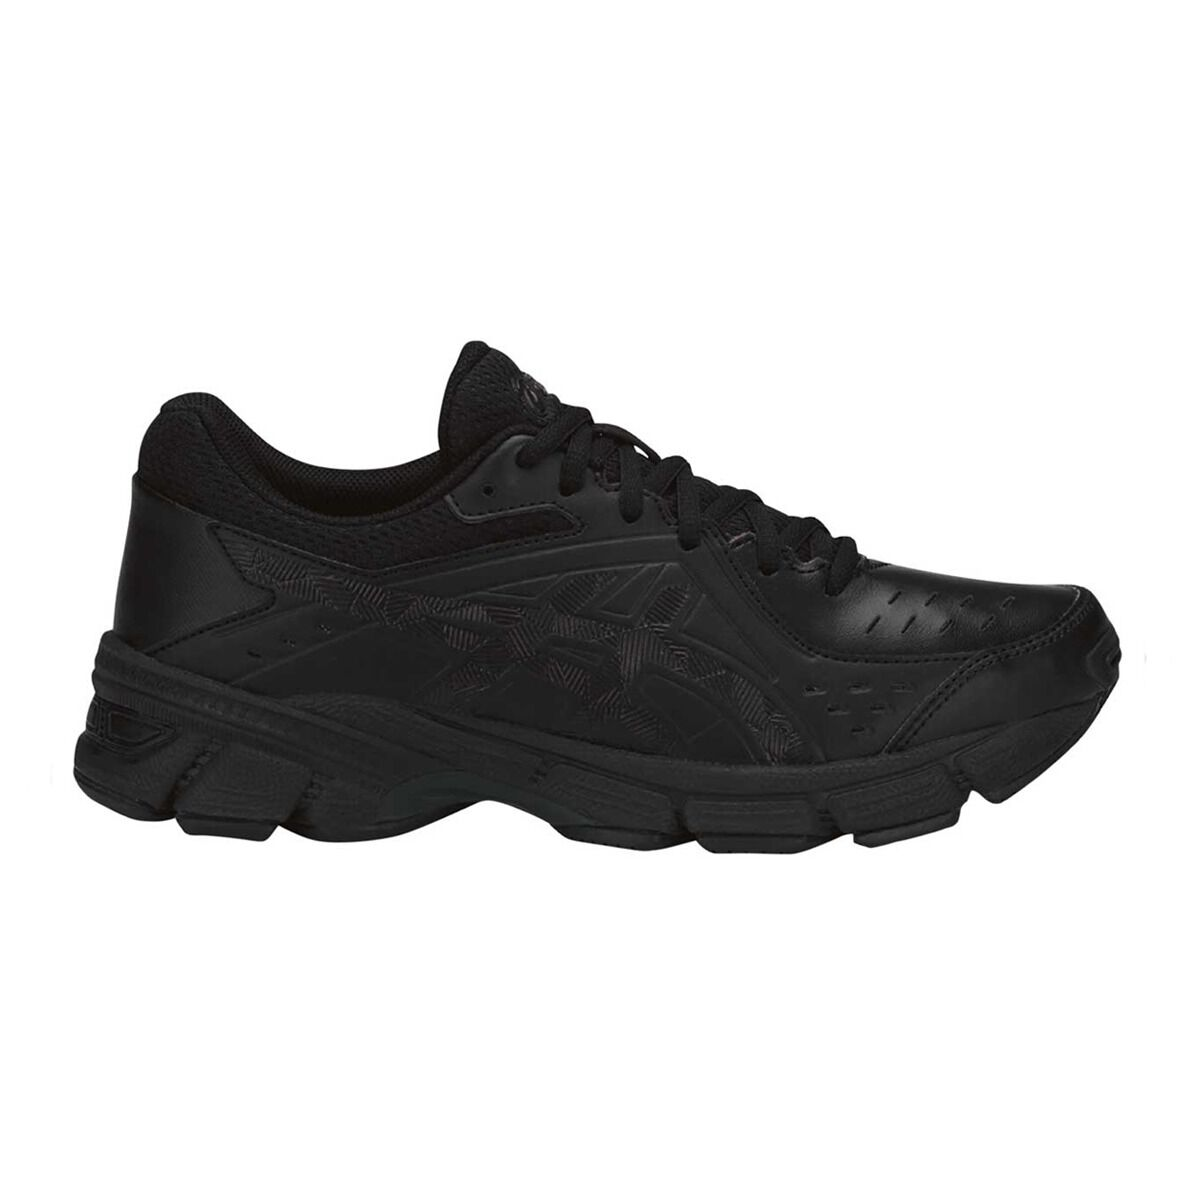 asics black leather womens shoes Cheaper Than Retail Price> Buy ...